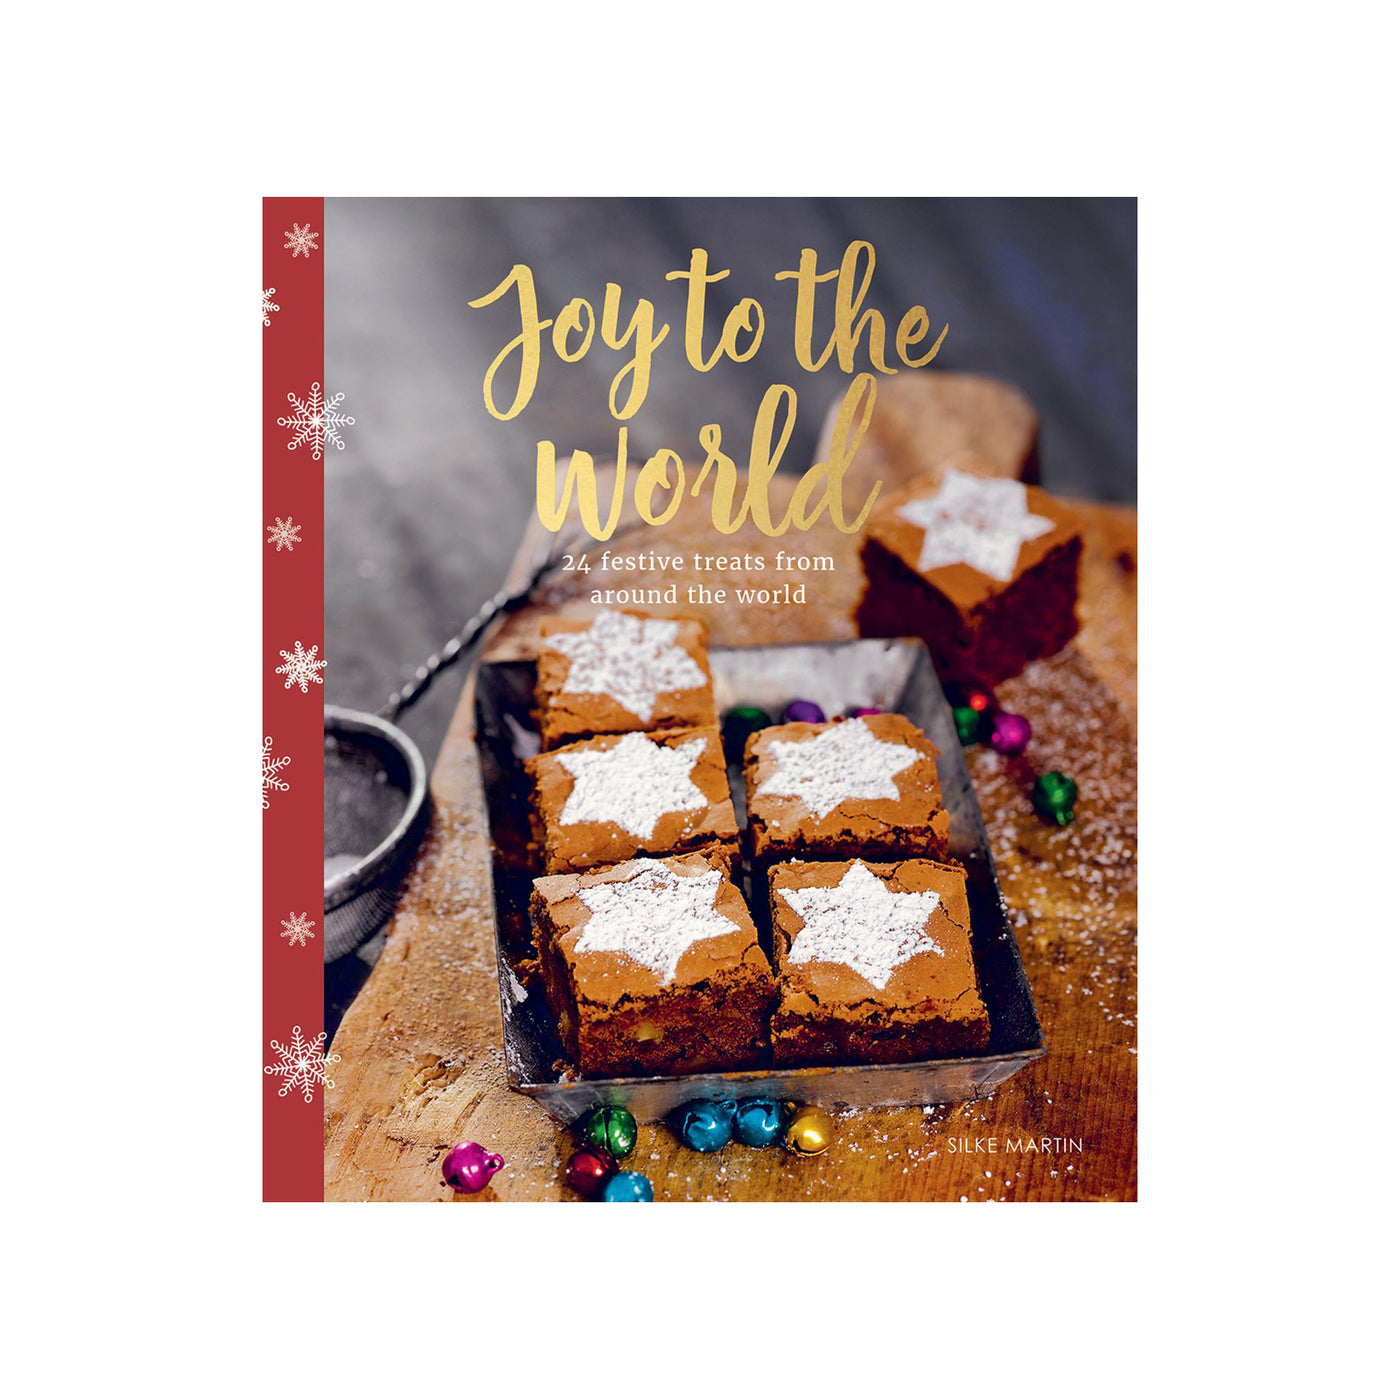 Joy To The Wold 24 Festive Treats from Around The World